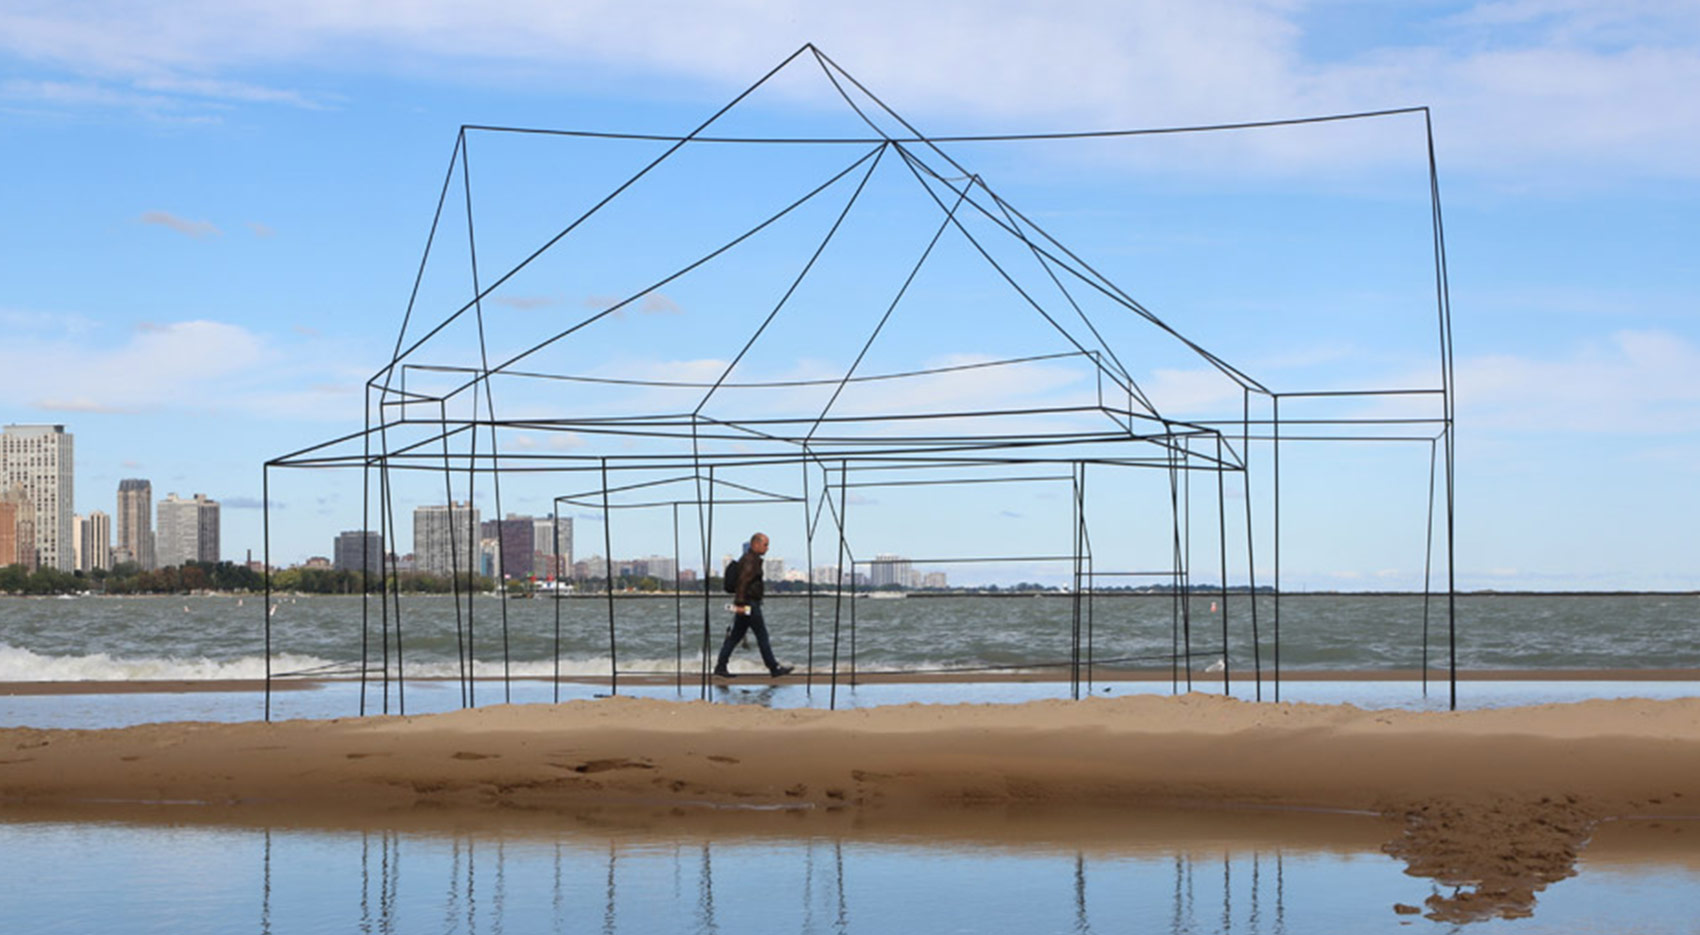 image of Titled House, a Sarah FitzSimons sculpture on the Lake Michigan